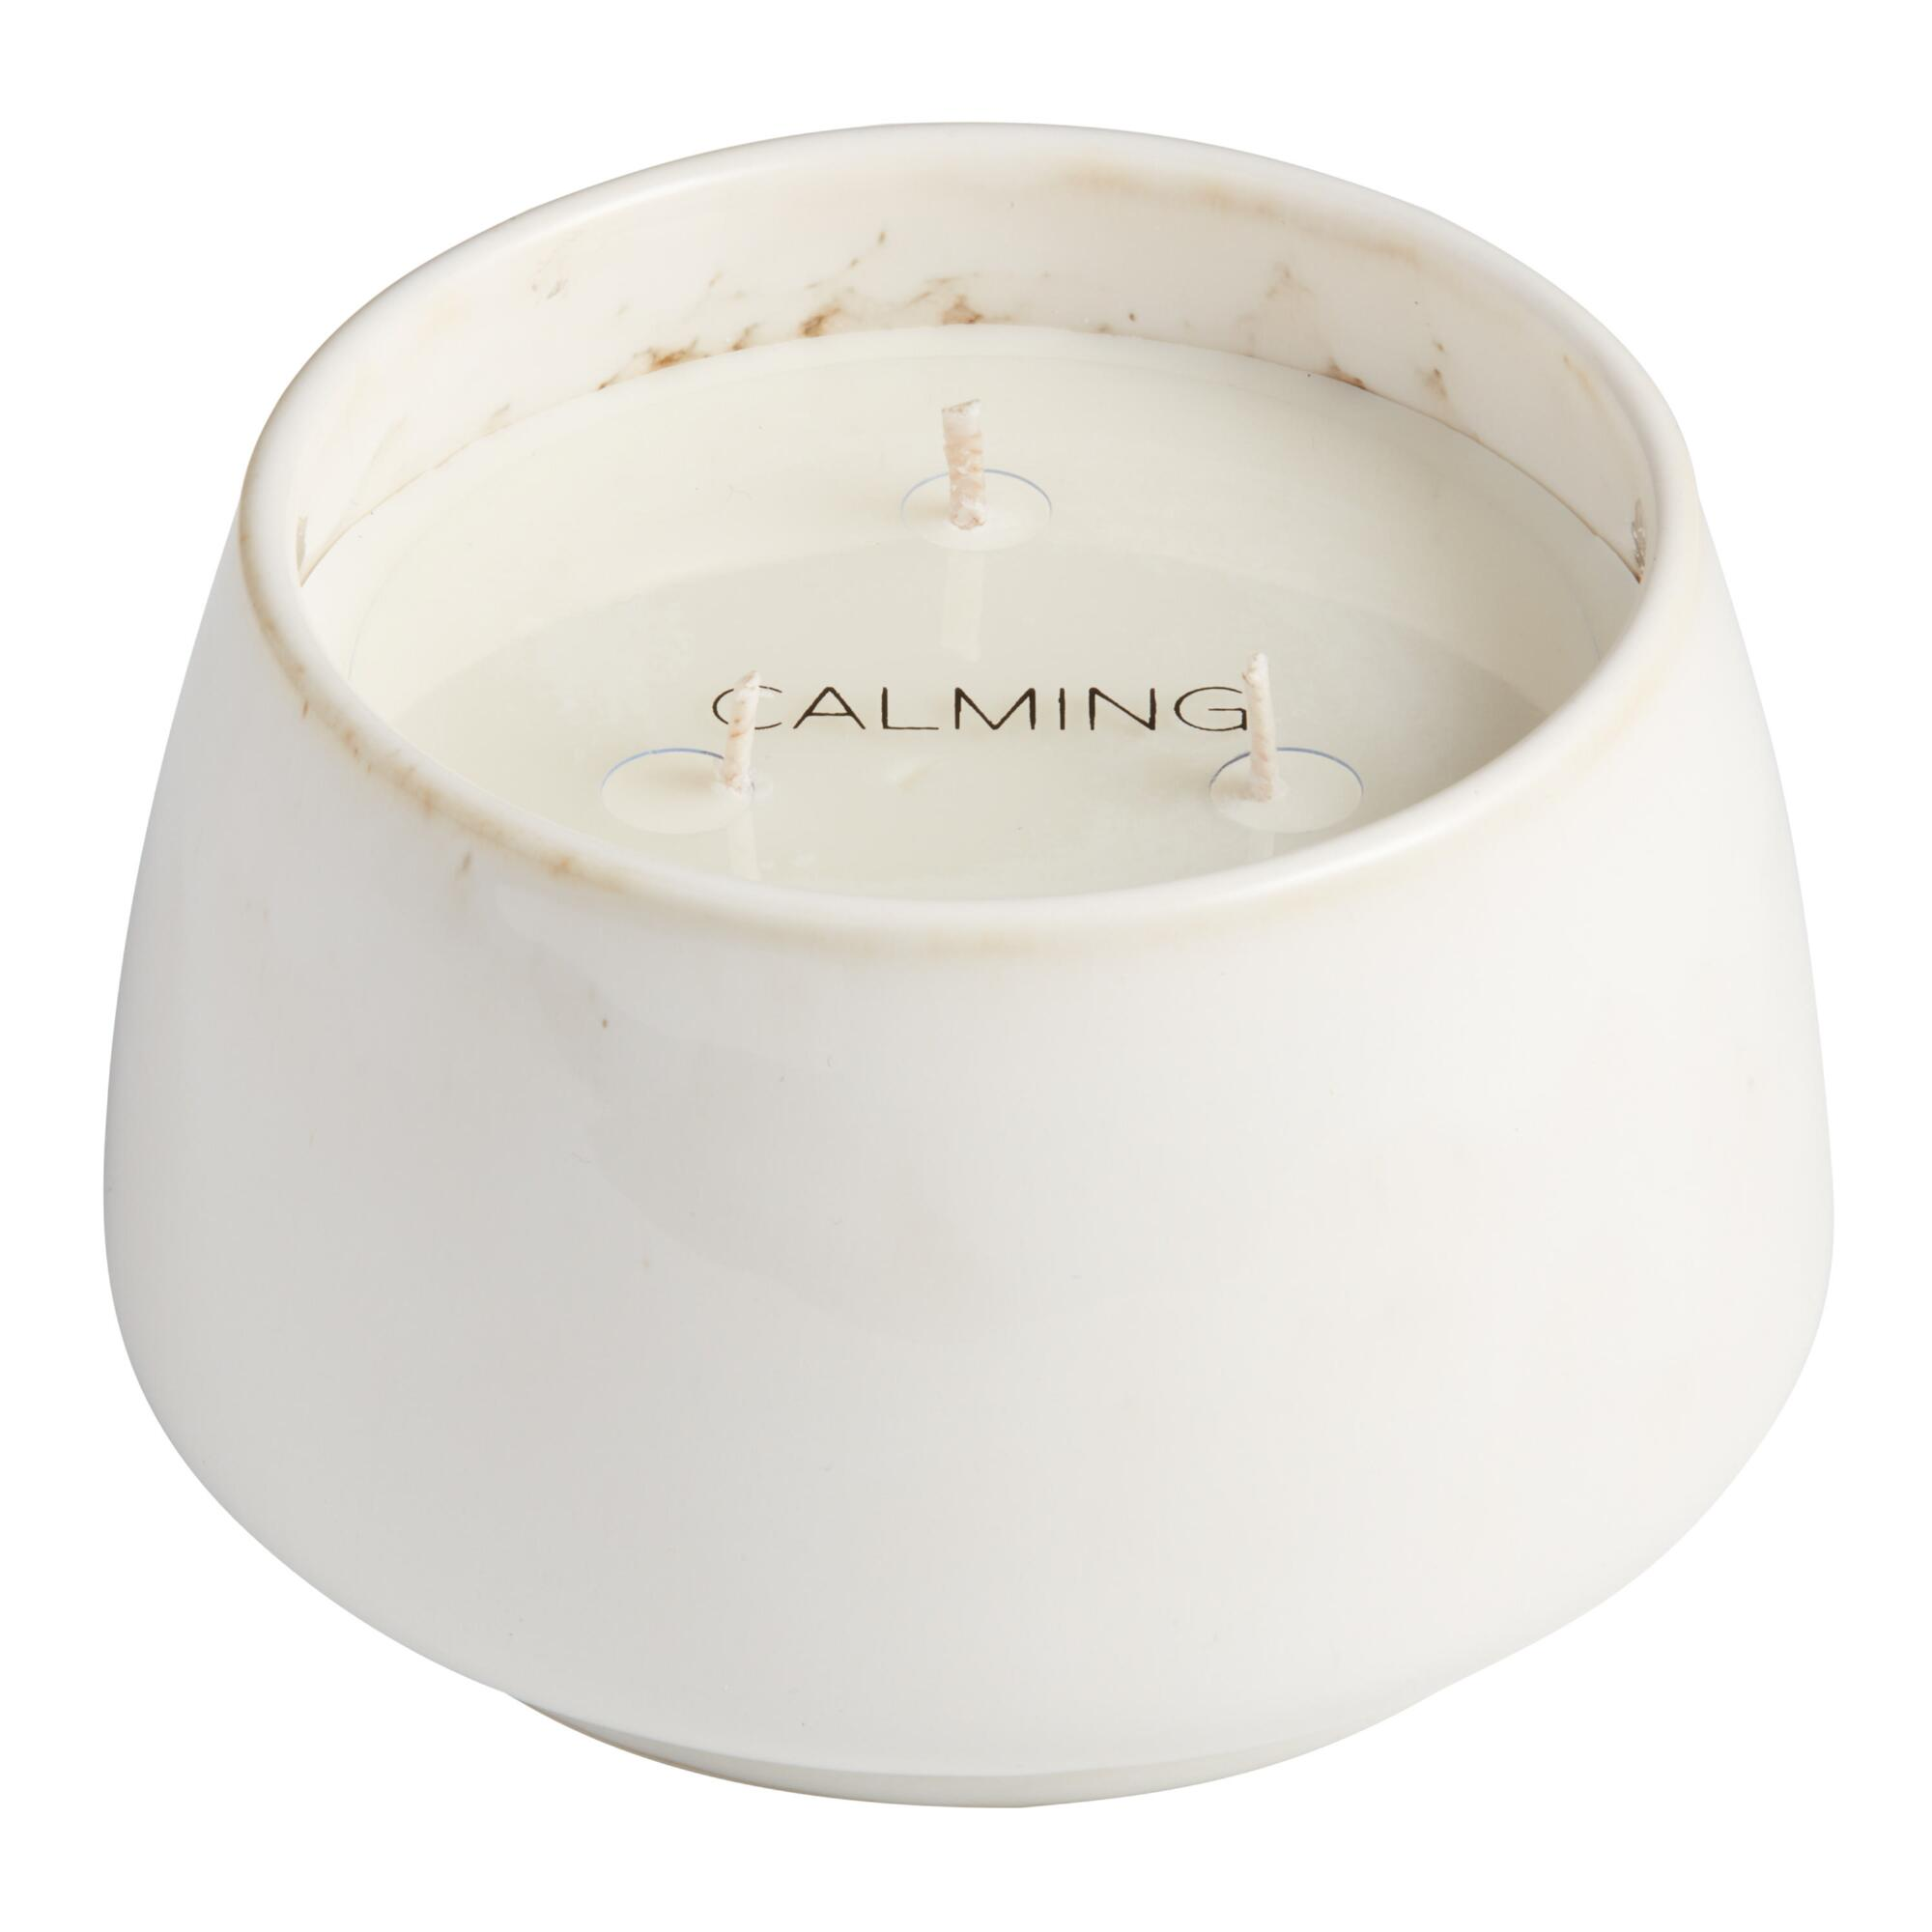 Calming Neutrals Soy Wax Reactive Glaze Filled Jar Candle $14.99